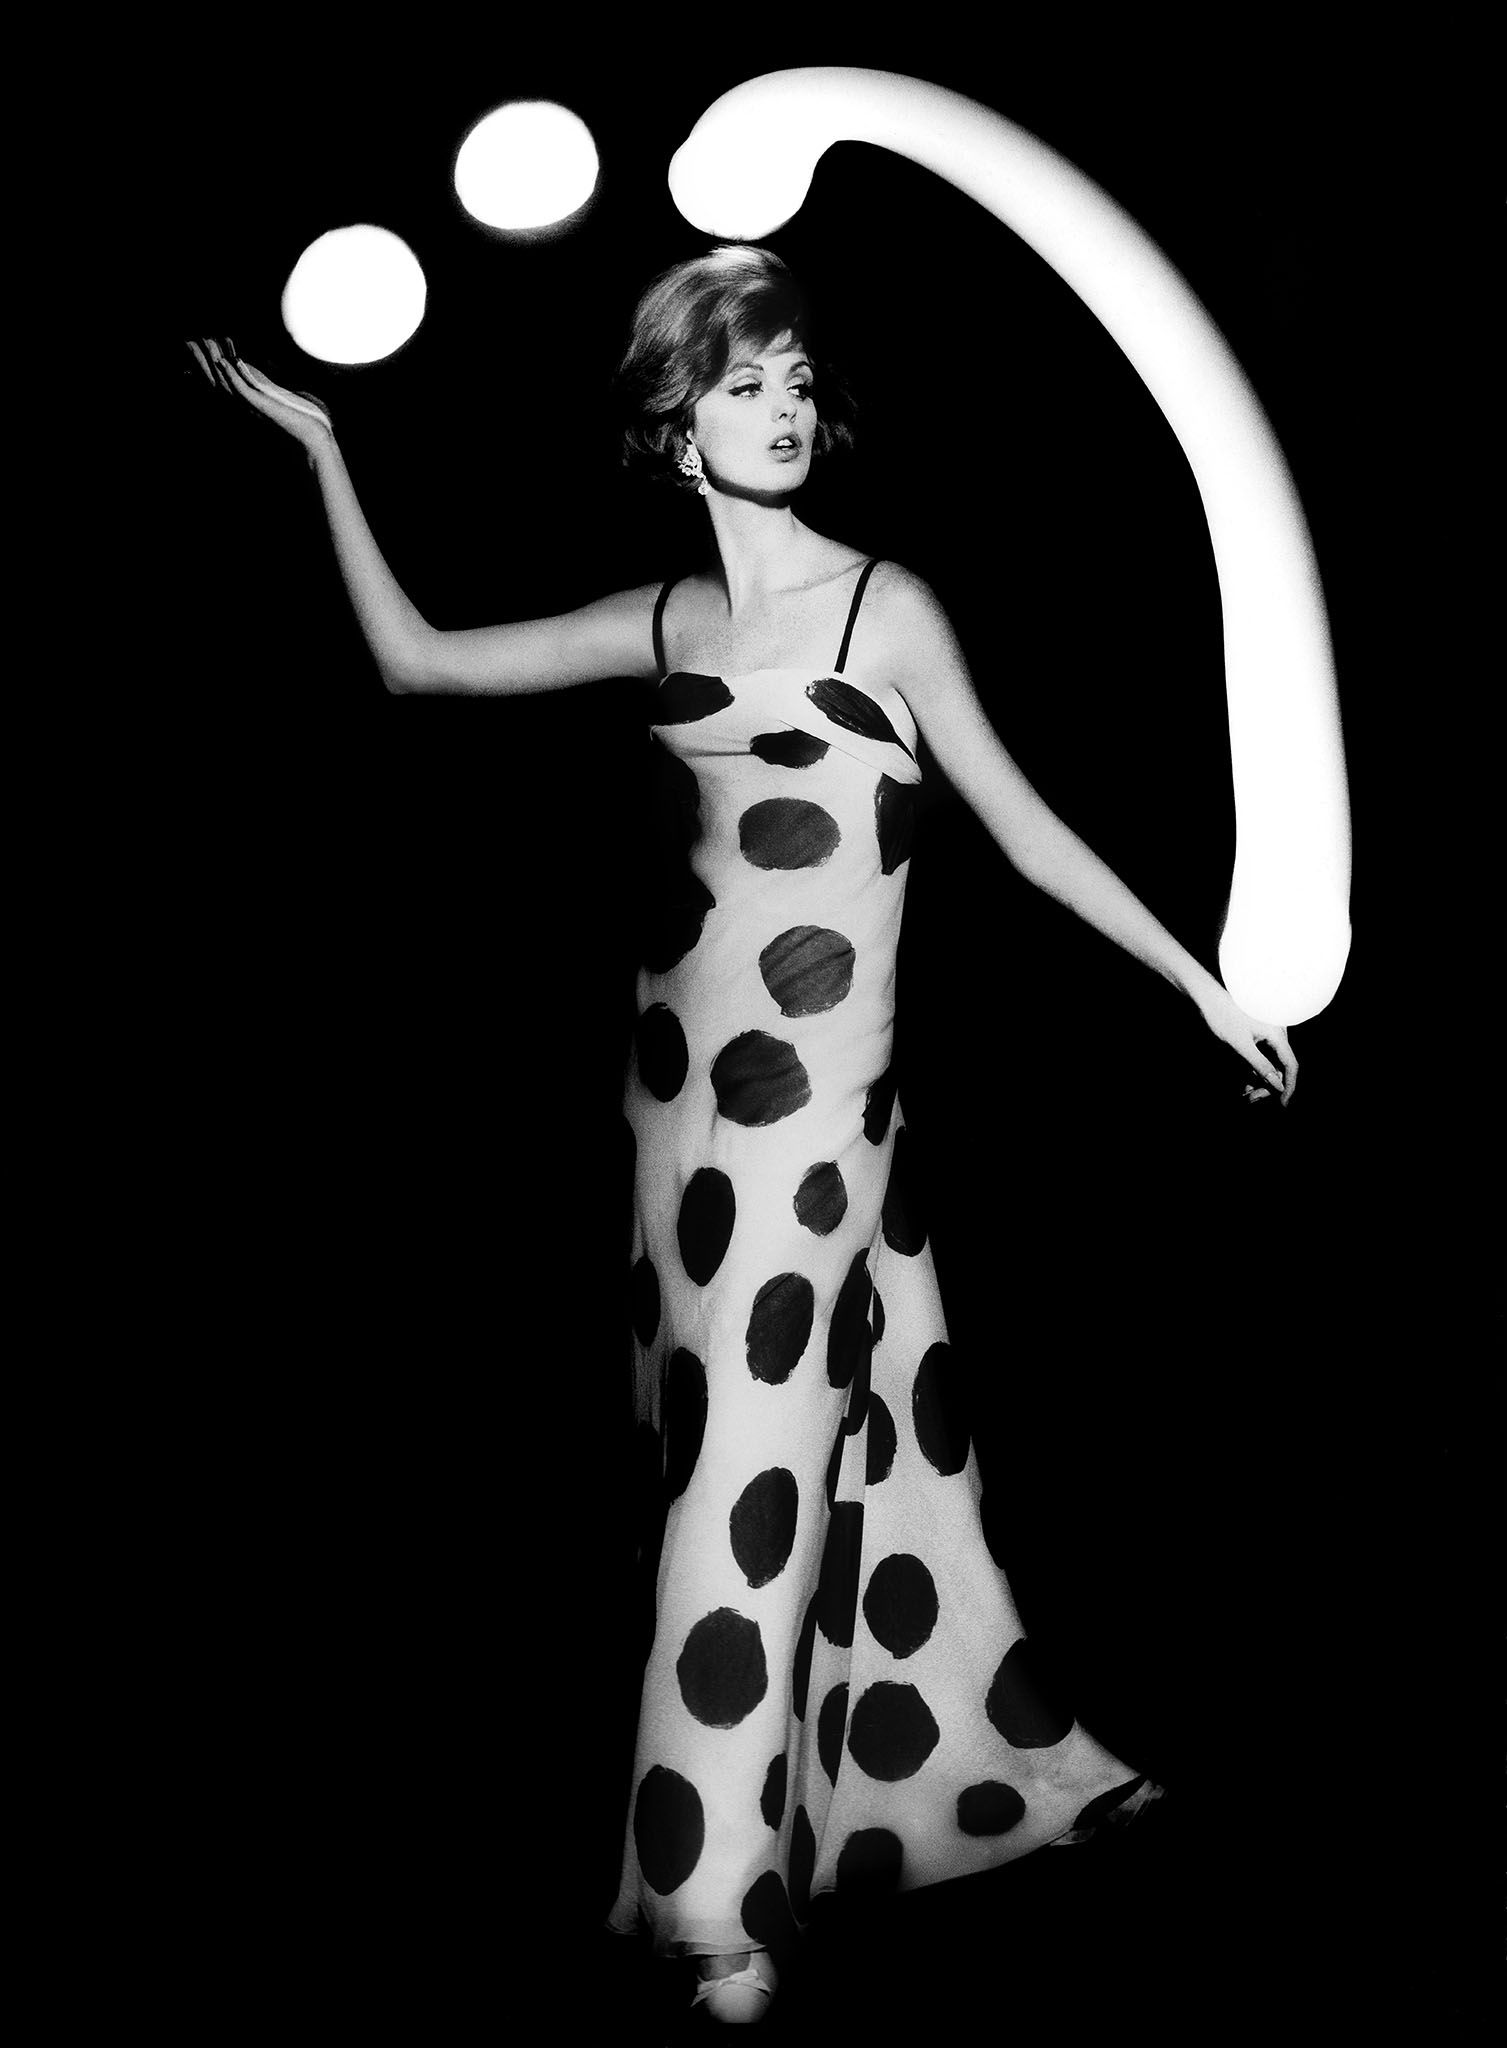 Dorothy-juggling-white-light-balls-Paris-Klein-VLD